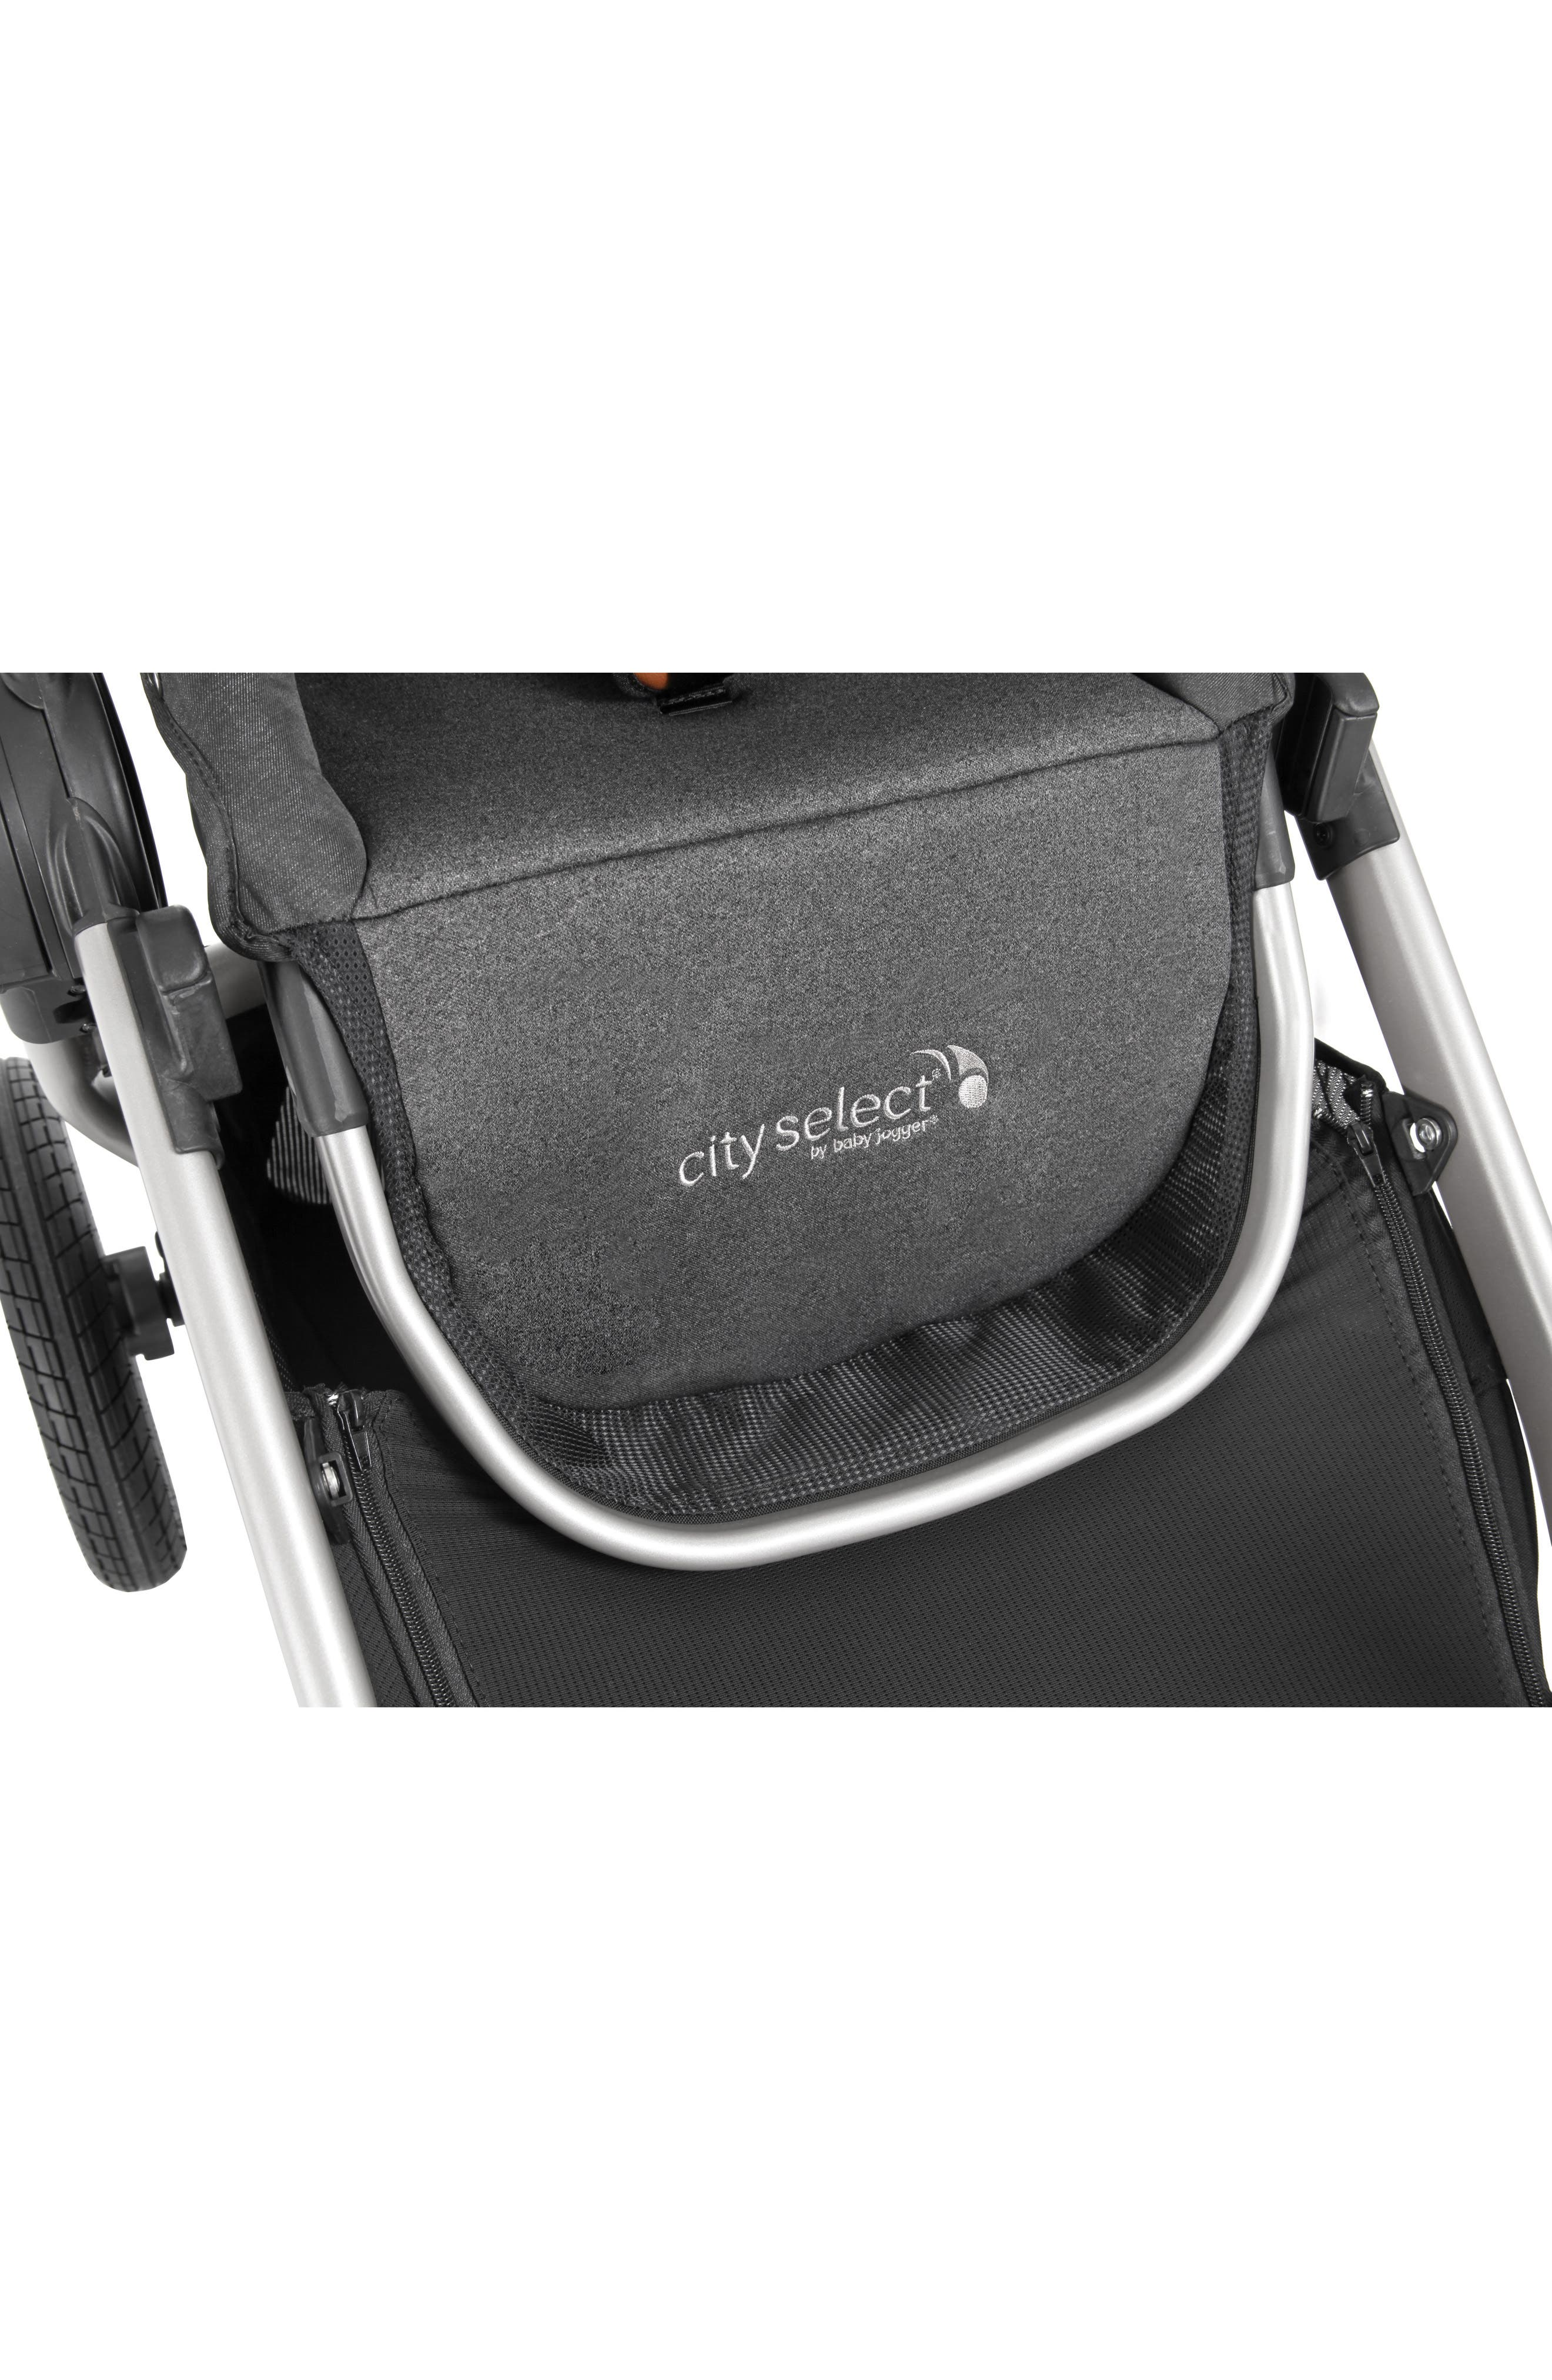 City Select<sup>®</sup> 2018 Special Edition 10-Year Anniversary Stroller,                             Alternate thumbnail 4, color,                             020